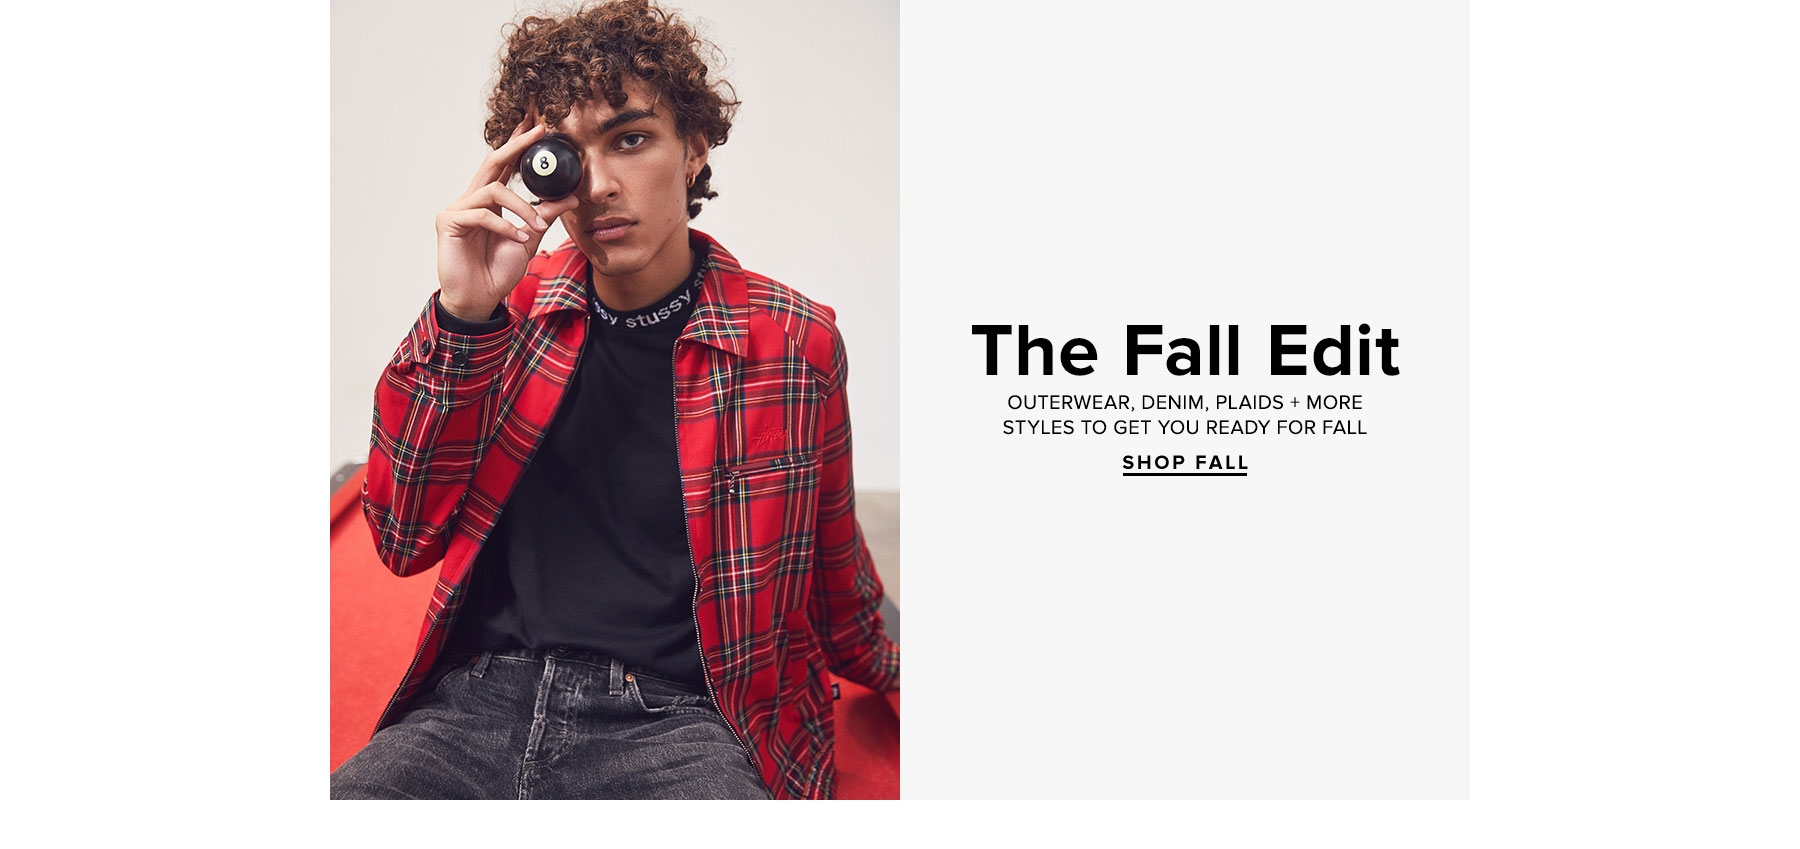 The Fall Edit - Outerwear, denim, plaids + more styles to get you ready for fall - Shop fall